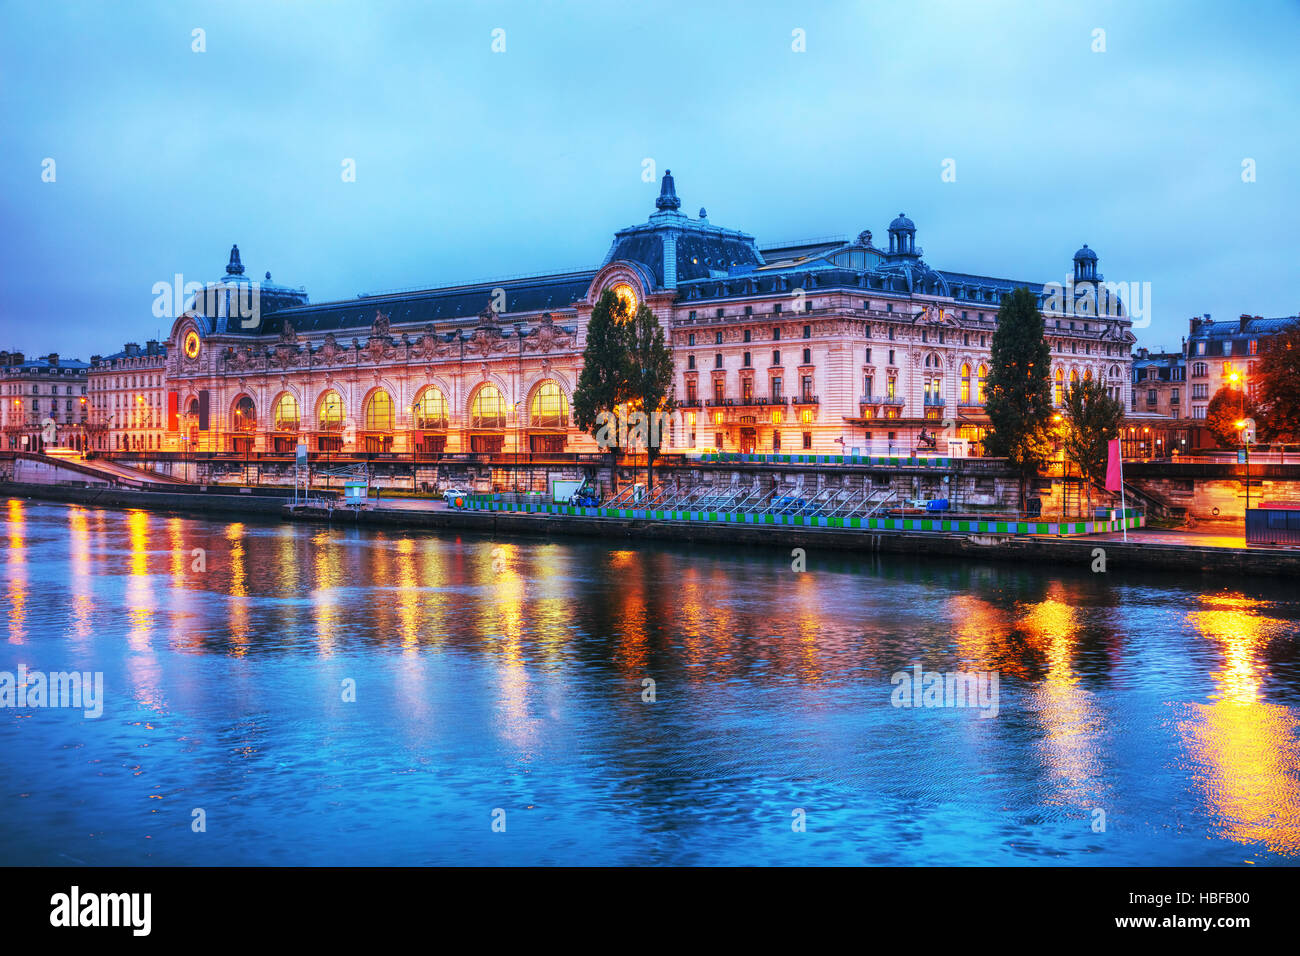 D'Orsay museum building in Paris, France at sunrise Stock Photo